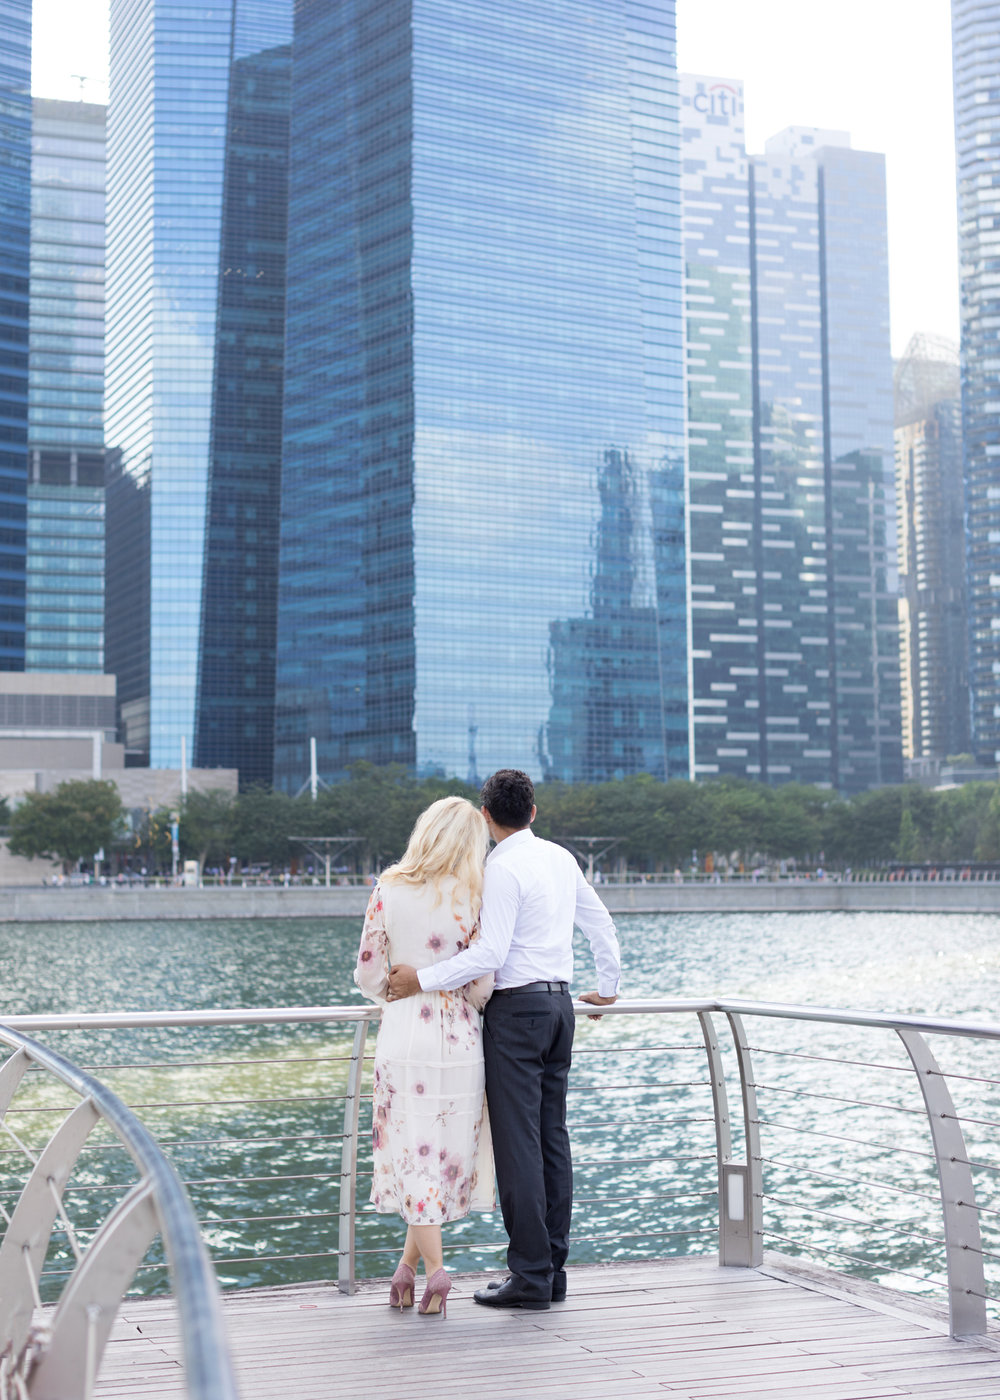 marina-bay-sands- couple-photoshoot-family-photographer-singapore-natural-light-photographer-candid-authentic-svensk-fotograf-singapore